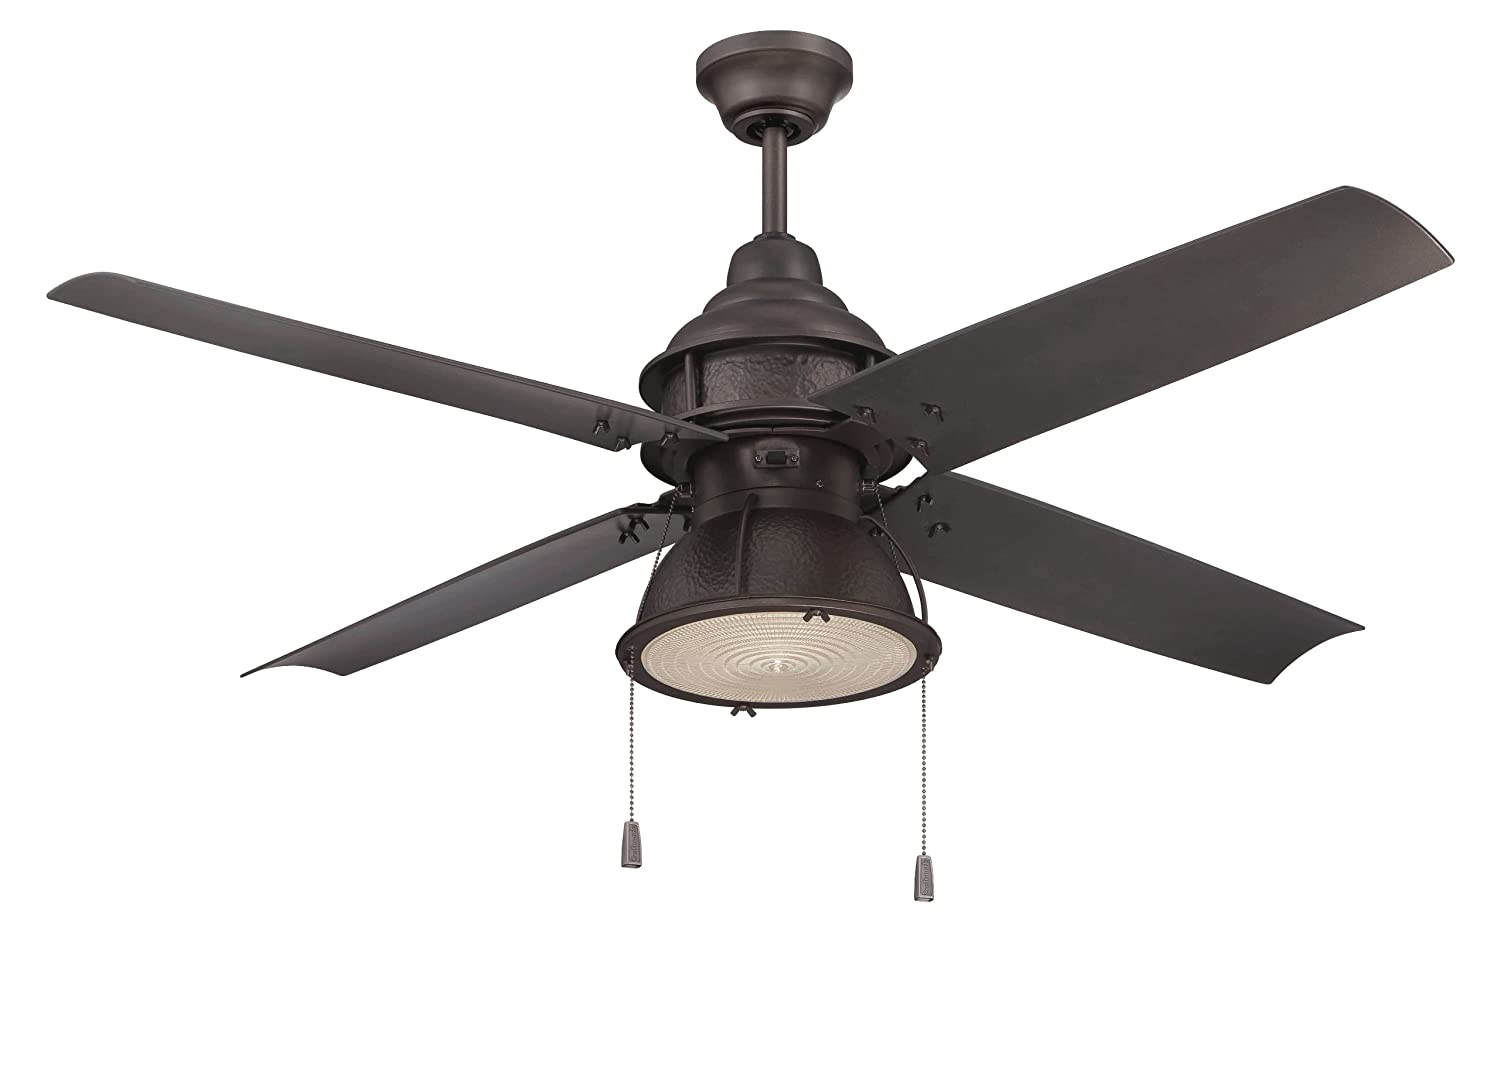 Craftmade par52esp4 port arbor espresso 52 inch outdoor 4 blade craftmade par52esp4 port arbor espresso 52 inch outdoor 4 blade ceiling fan with light wet rated amazon mozeypictures Choice Image